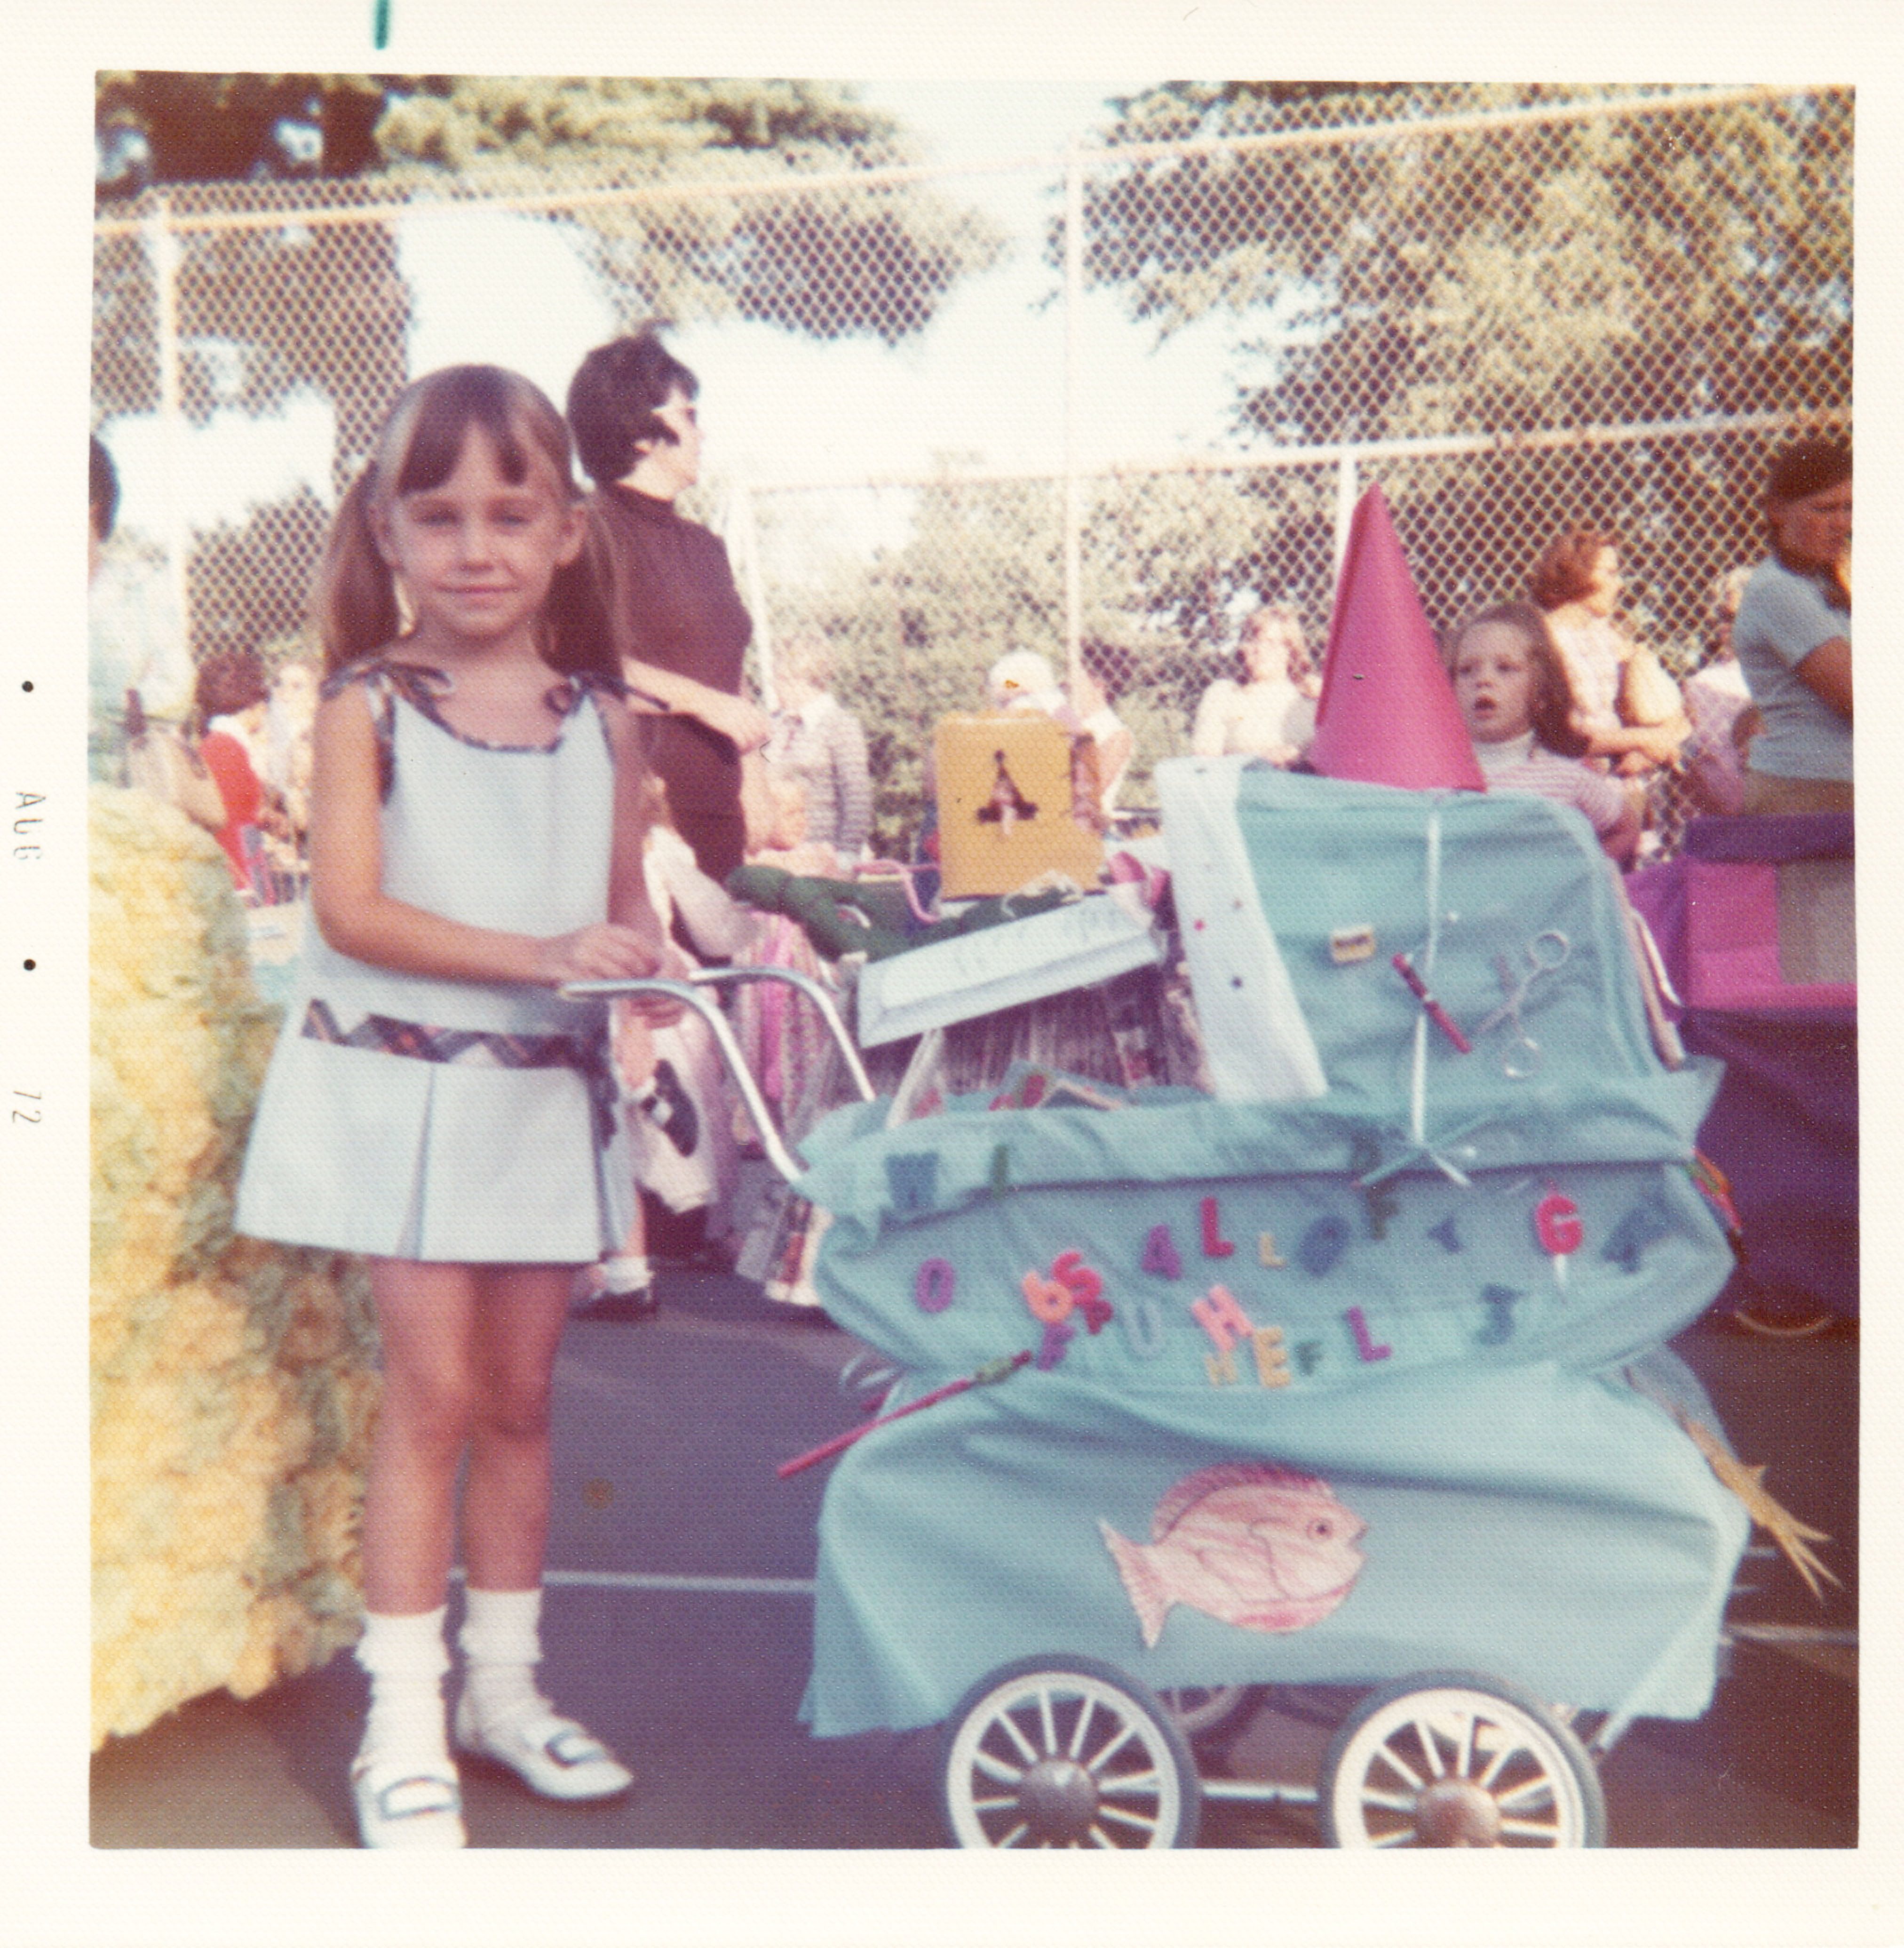 A photo of a girl with a decorated doll carriage.